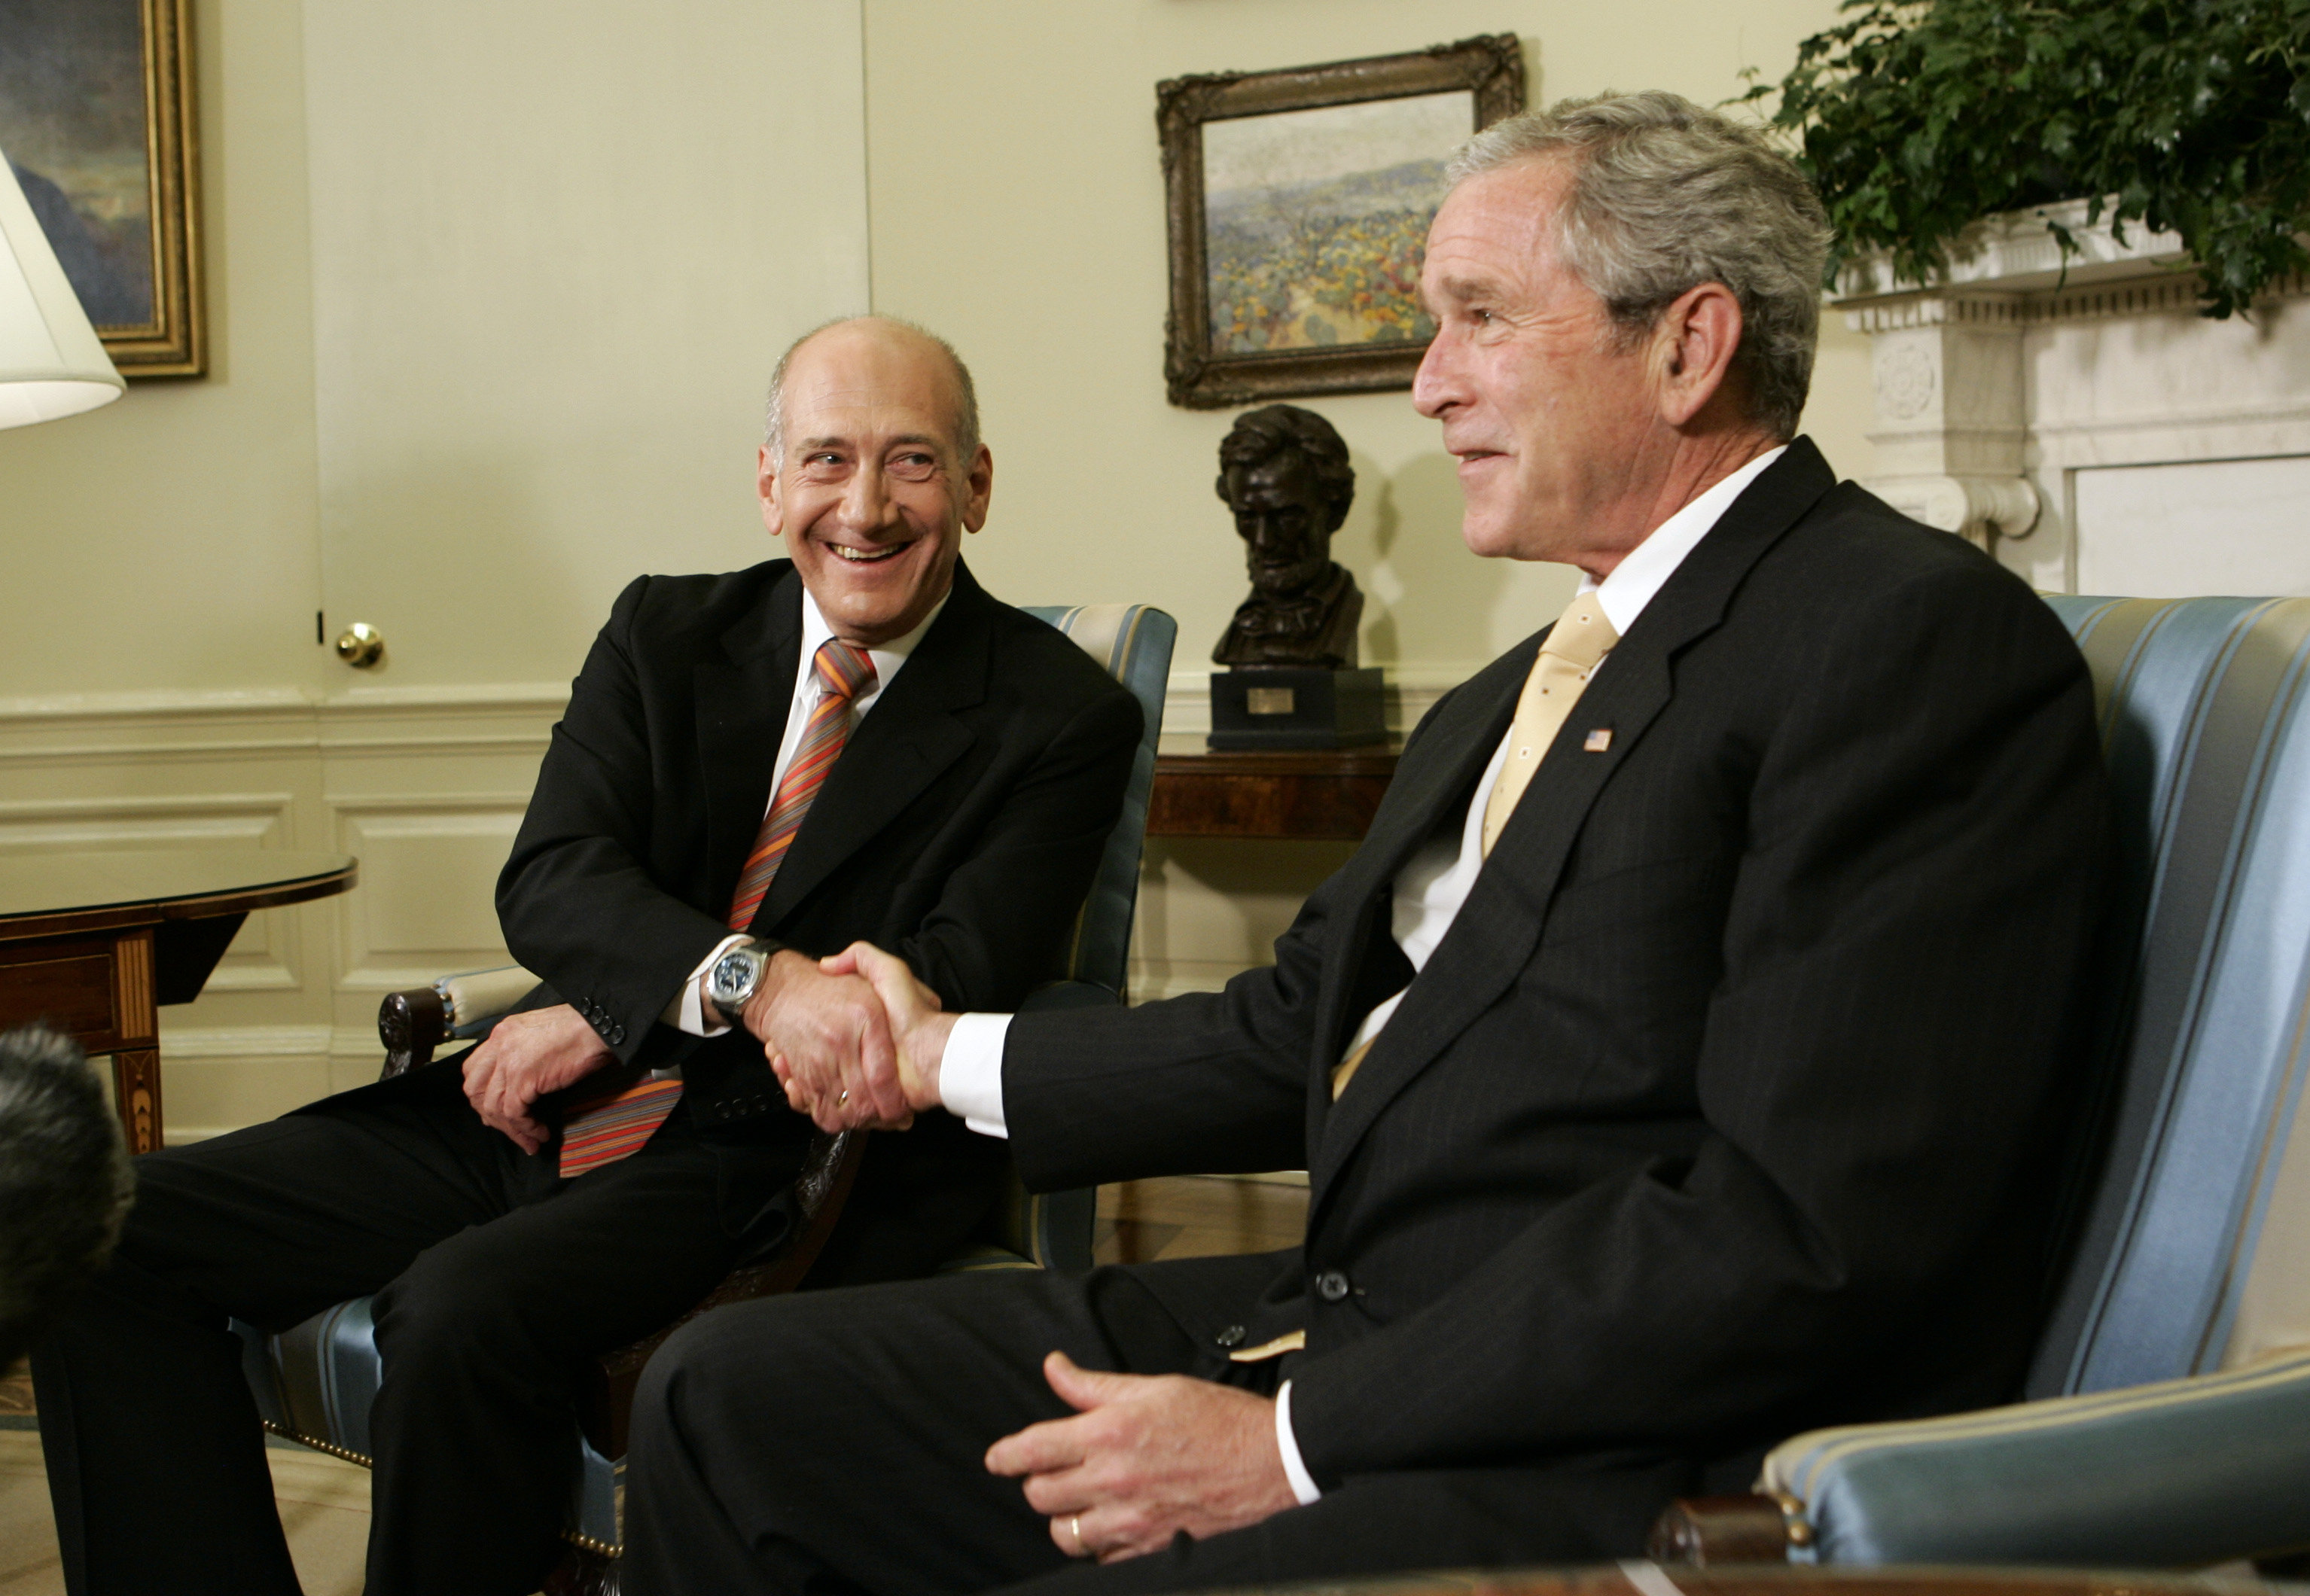 President Bush, right, shakes hands with Israeli Prime Minister Ehud Olmert, Wednesday, June 4, 2008, in the Oval Office of the White House